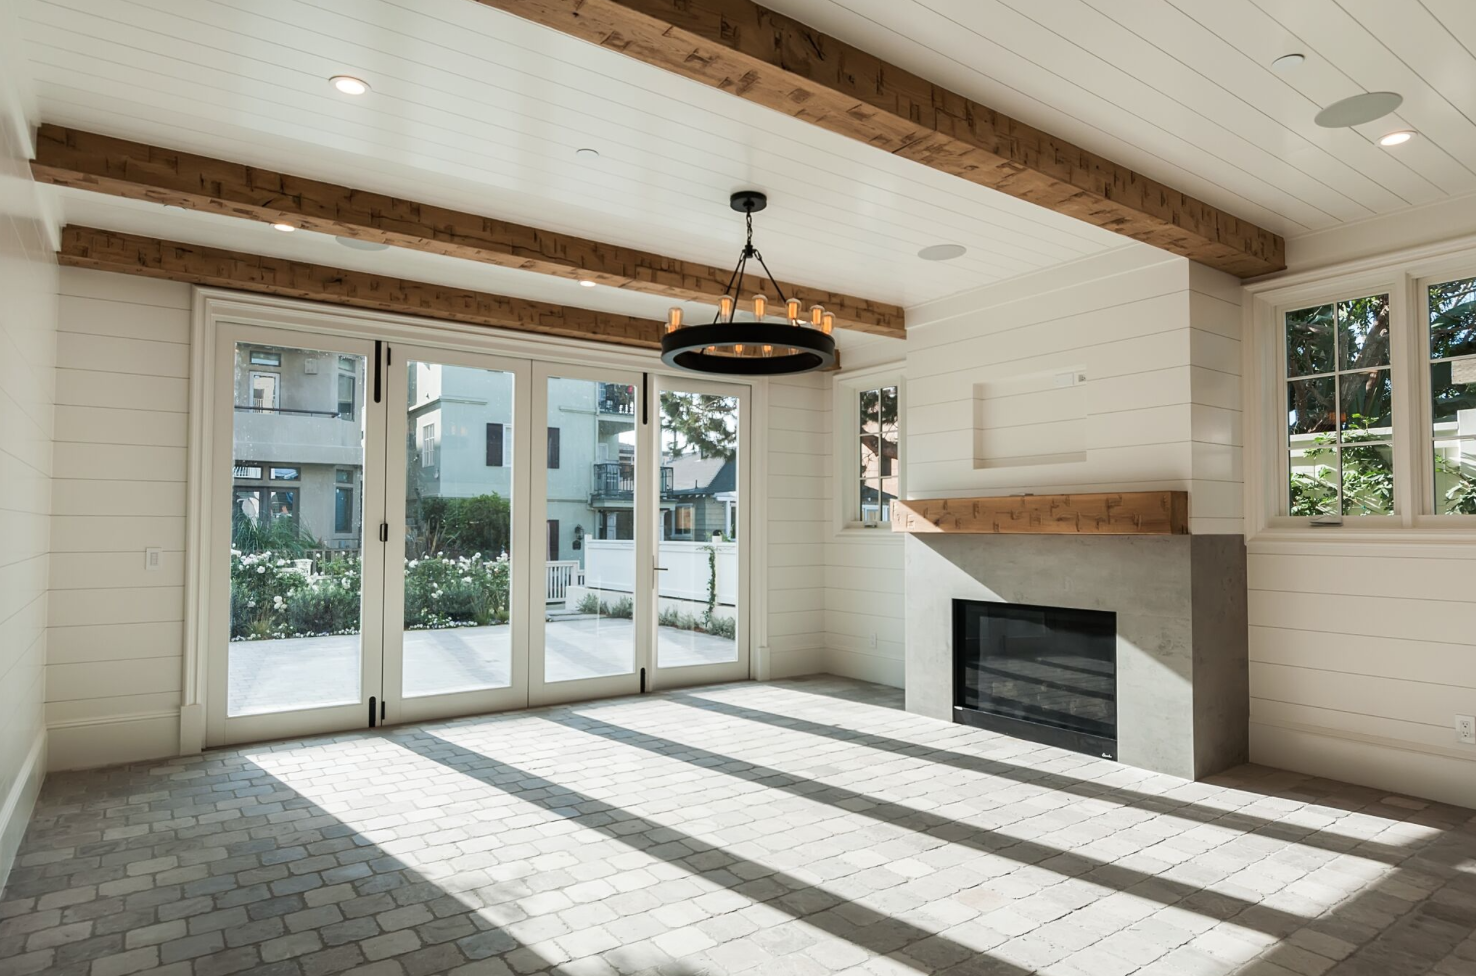 Fireplaces are these giant holes in walls that provide great design opportunity! In this home, we kept them clean and modern. They're extremely durable; made of cement, stone, and wood. They're focal points that combine materials in a modern way, a motif that runs throughout the home.